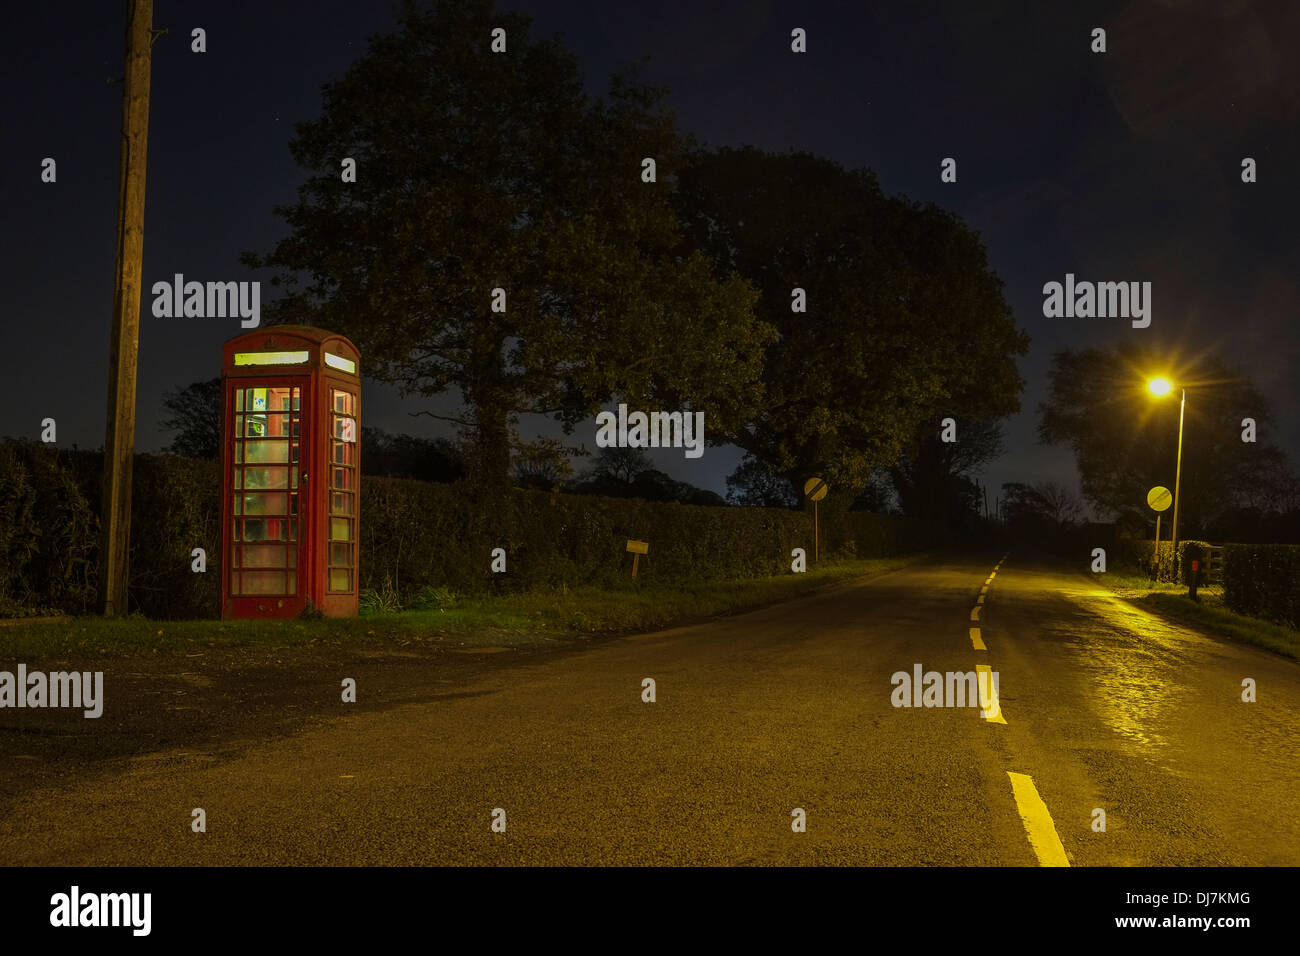 Lone Red Telephone box on a country lane at night - Stock Image